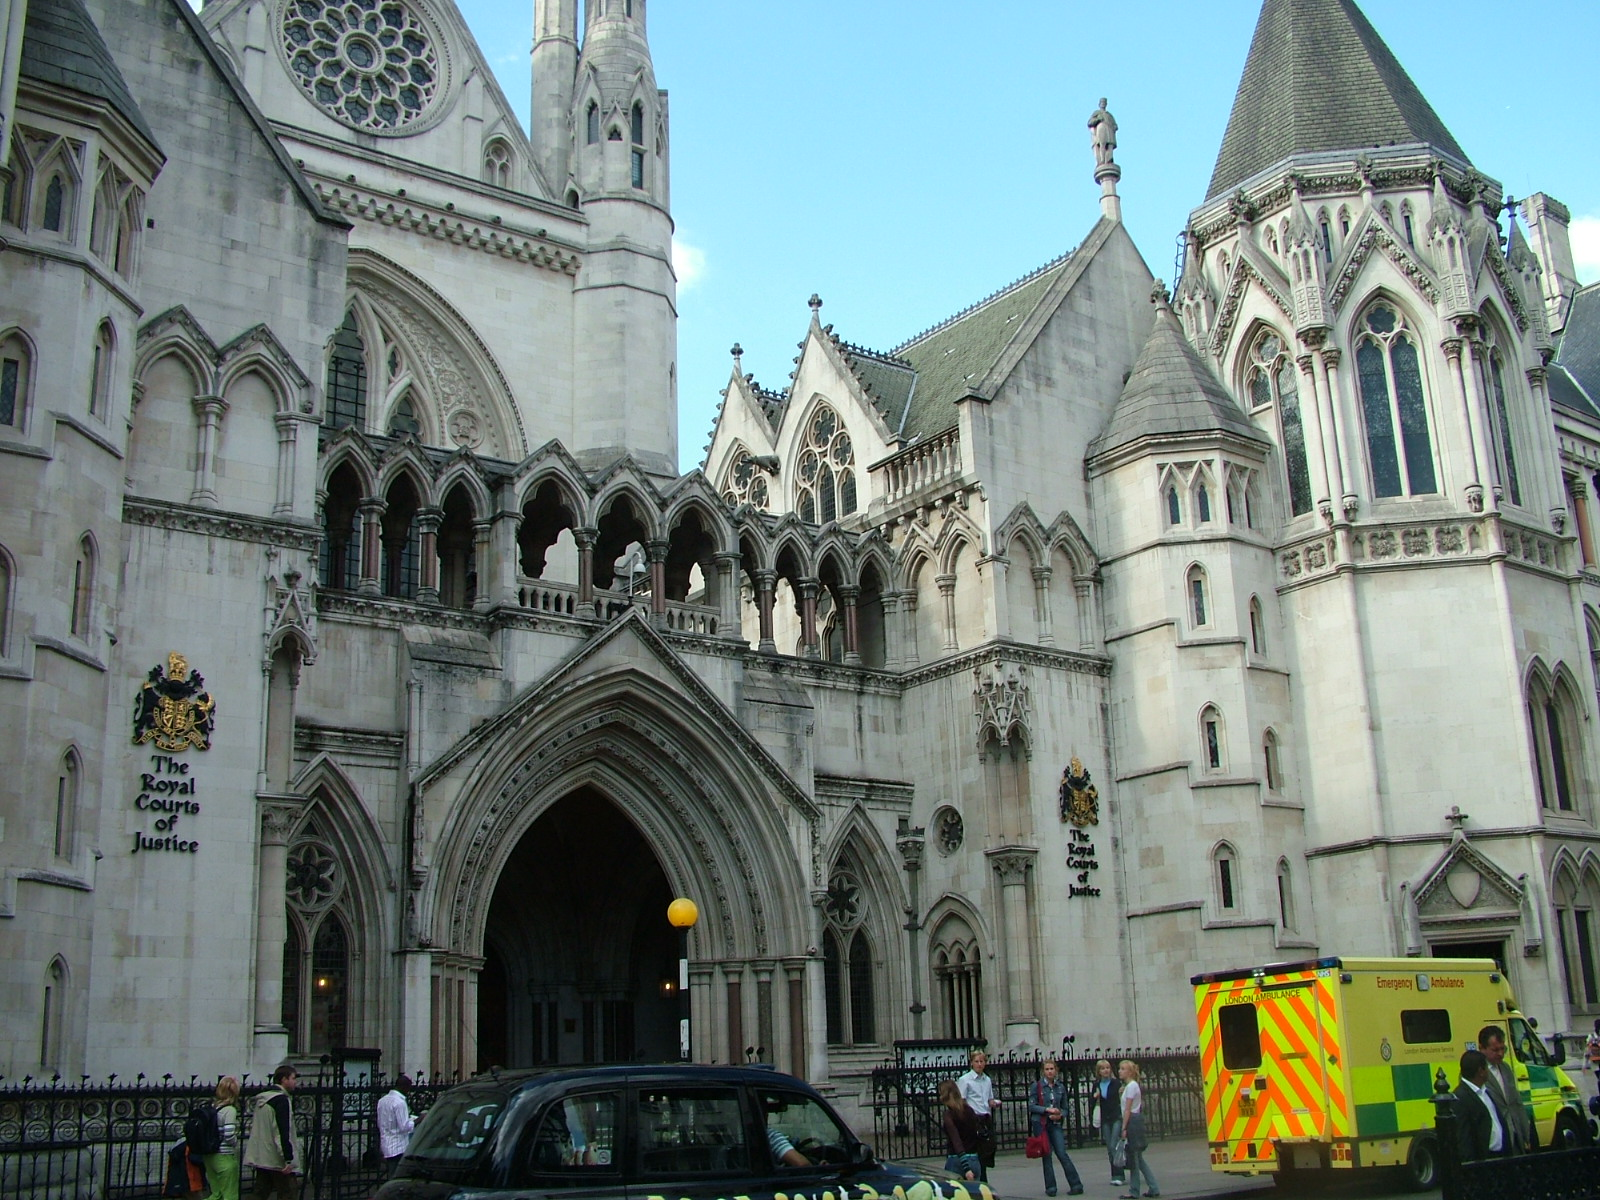 The Royal Courts of Justice was opened by Queen Victoria in 1882 and became the permanent home of the Supreme Court. The Supreme Court consists of two courts: the High Court of Justice and the Court of Appeal. The High Court consists of three Divisions dealing mainly with civil disputes: the Chancer...